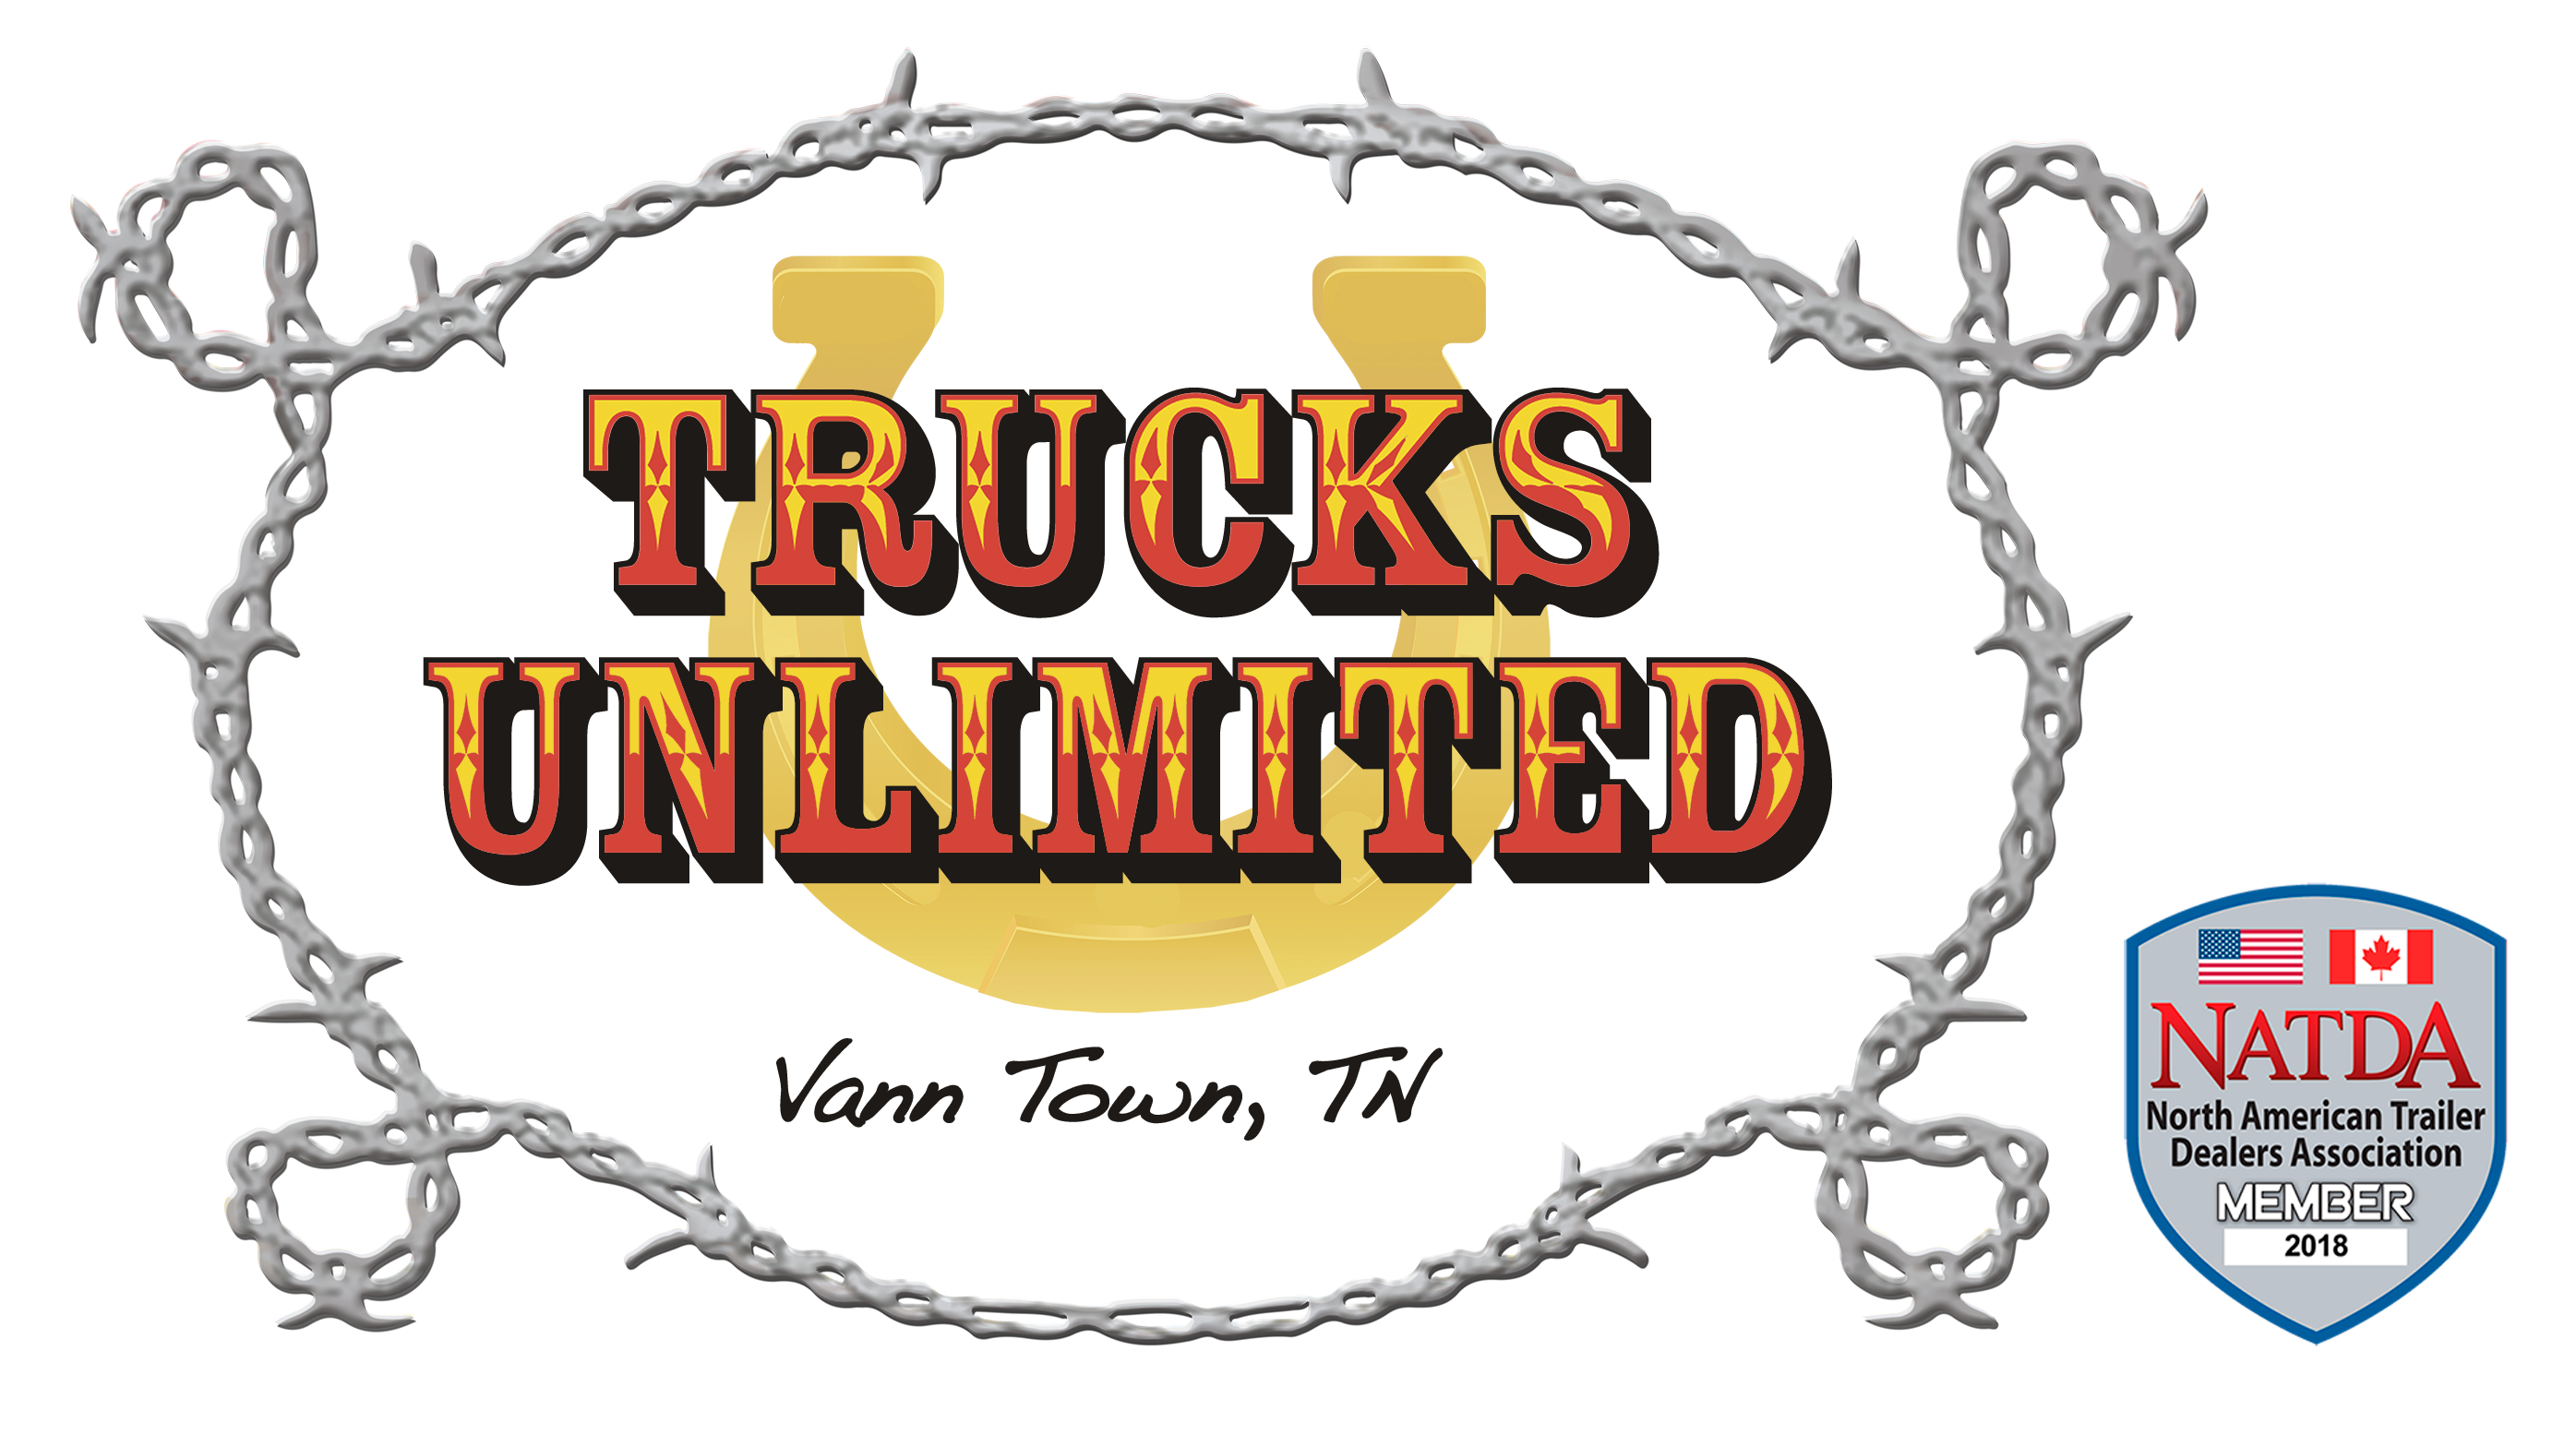 Trucks Unlimited